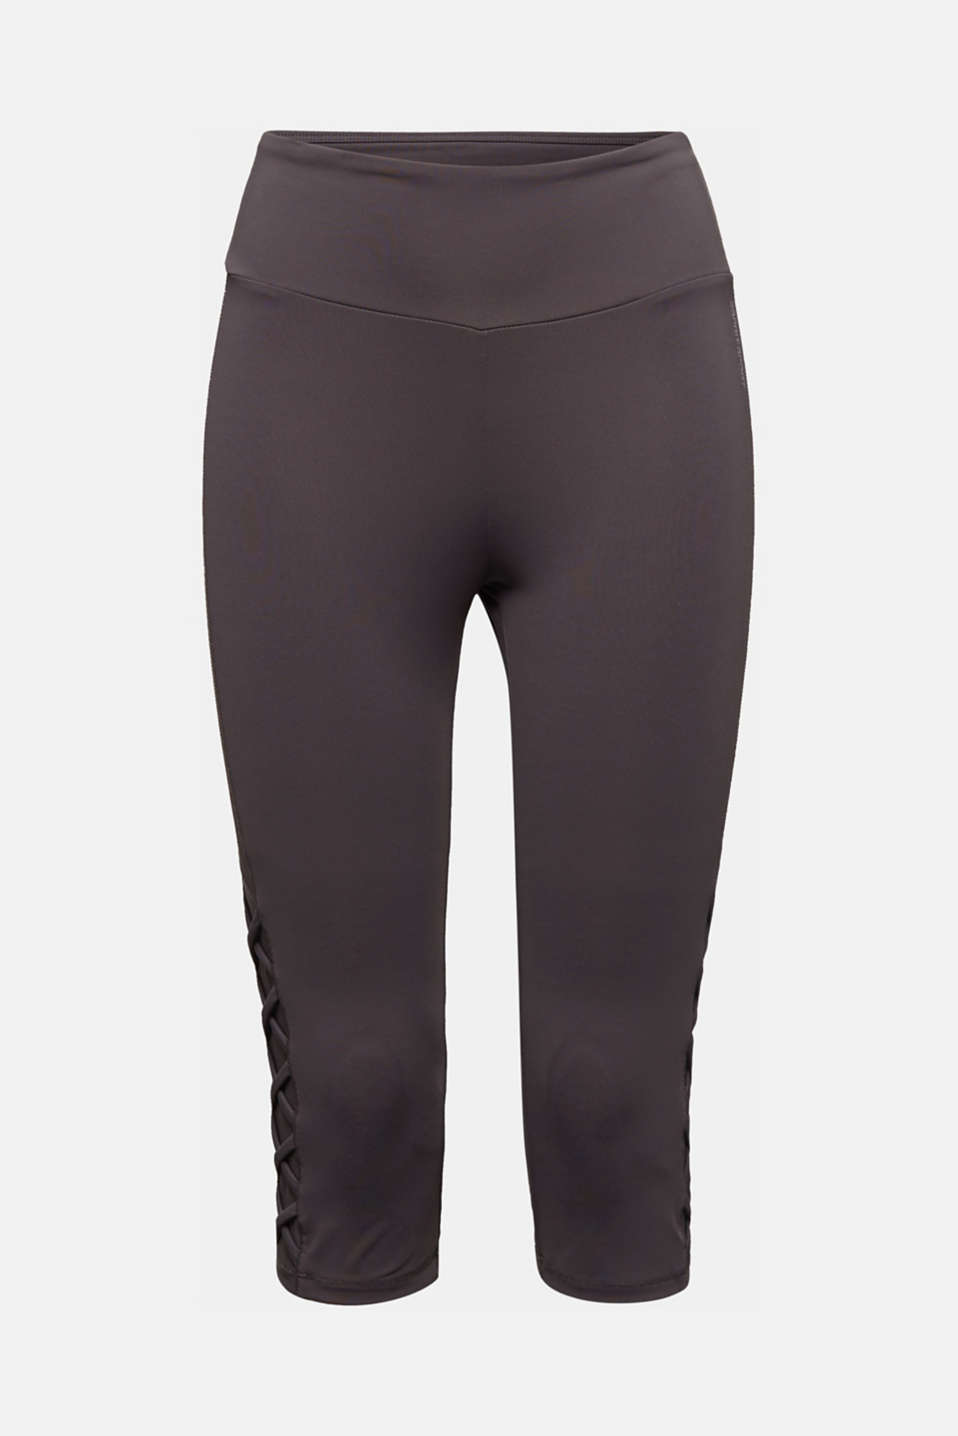 E-DRY leggings with mesh details, ANTHRACITE, detail image number 5